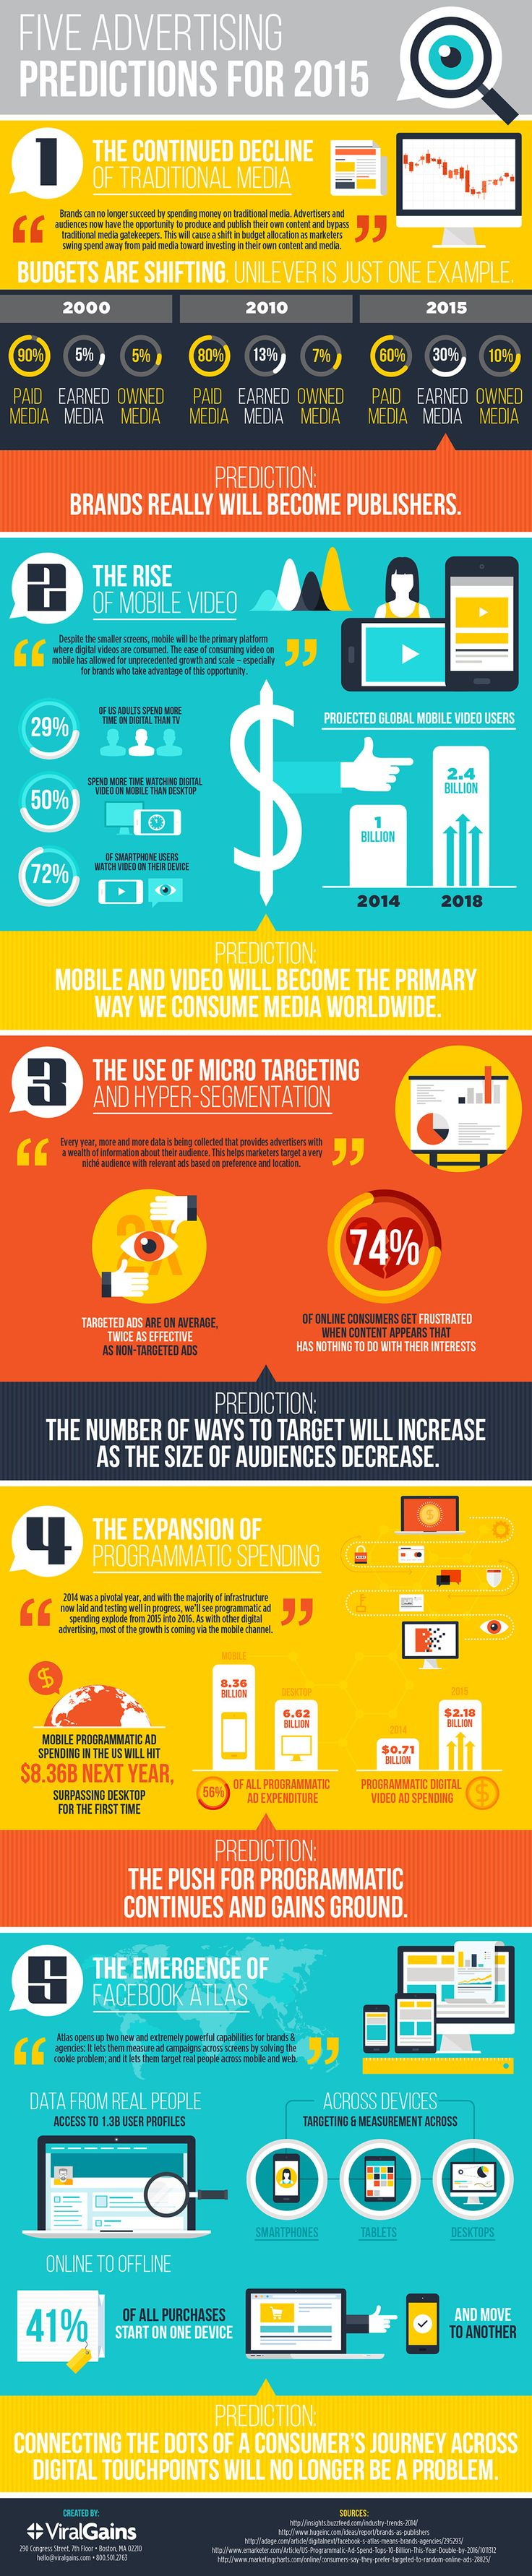 5 #Digital Advertising Predictions for 2015 - #Infographic